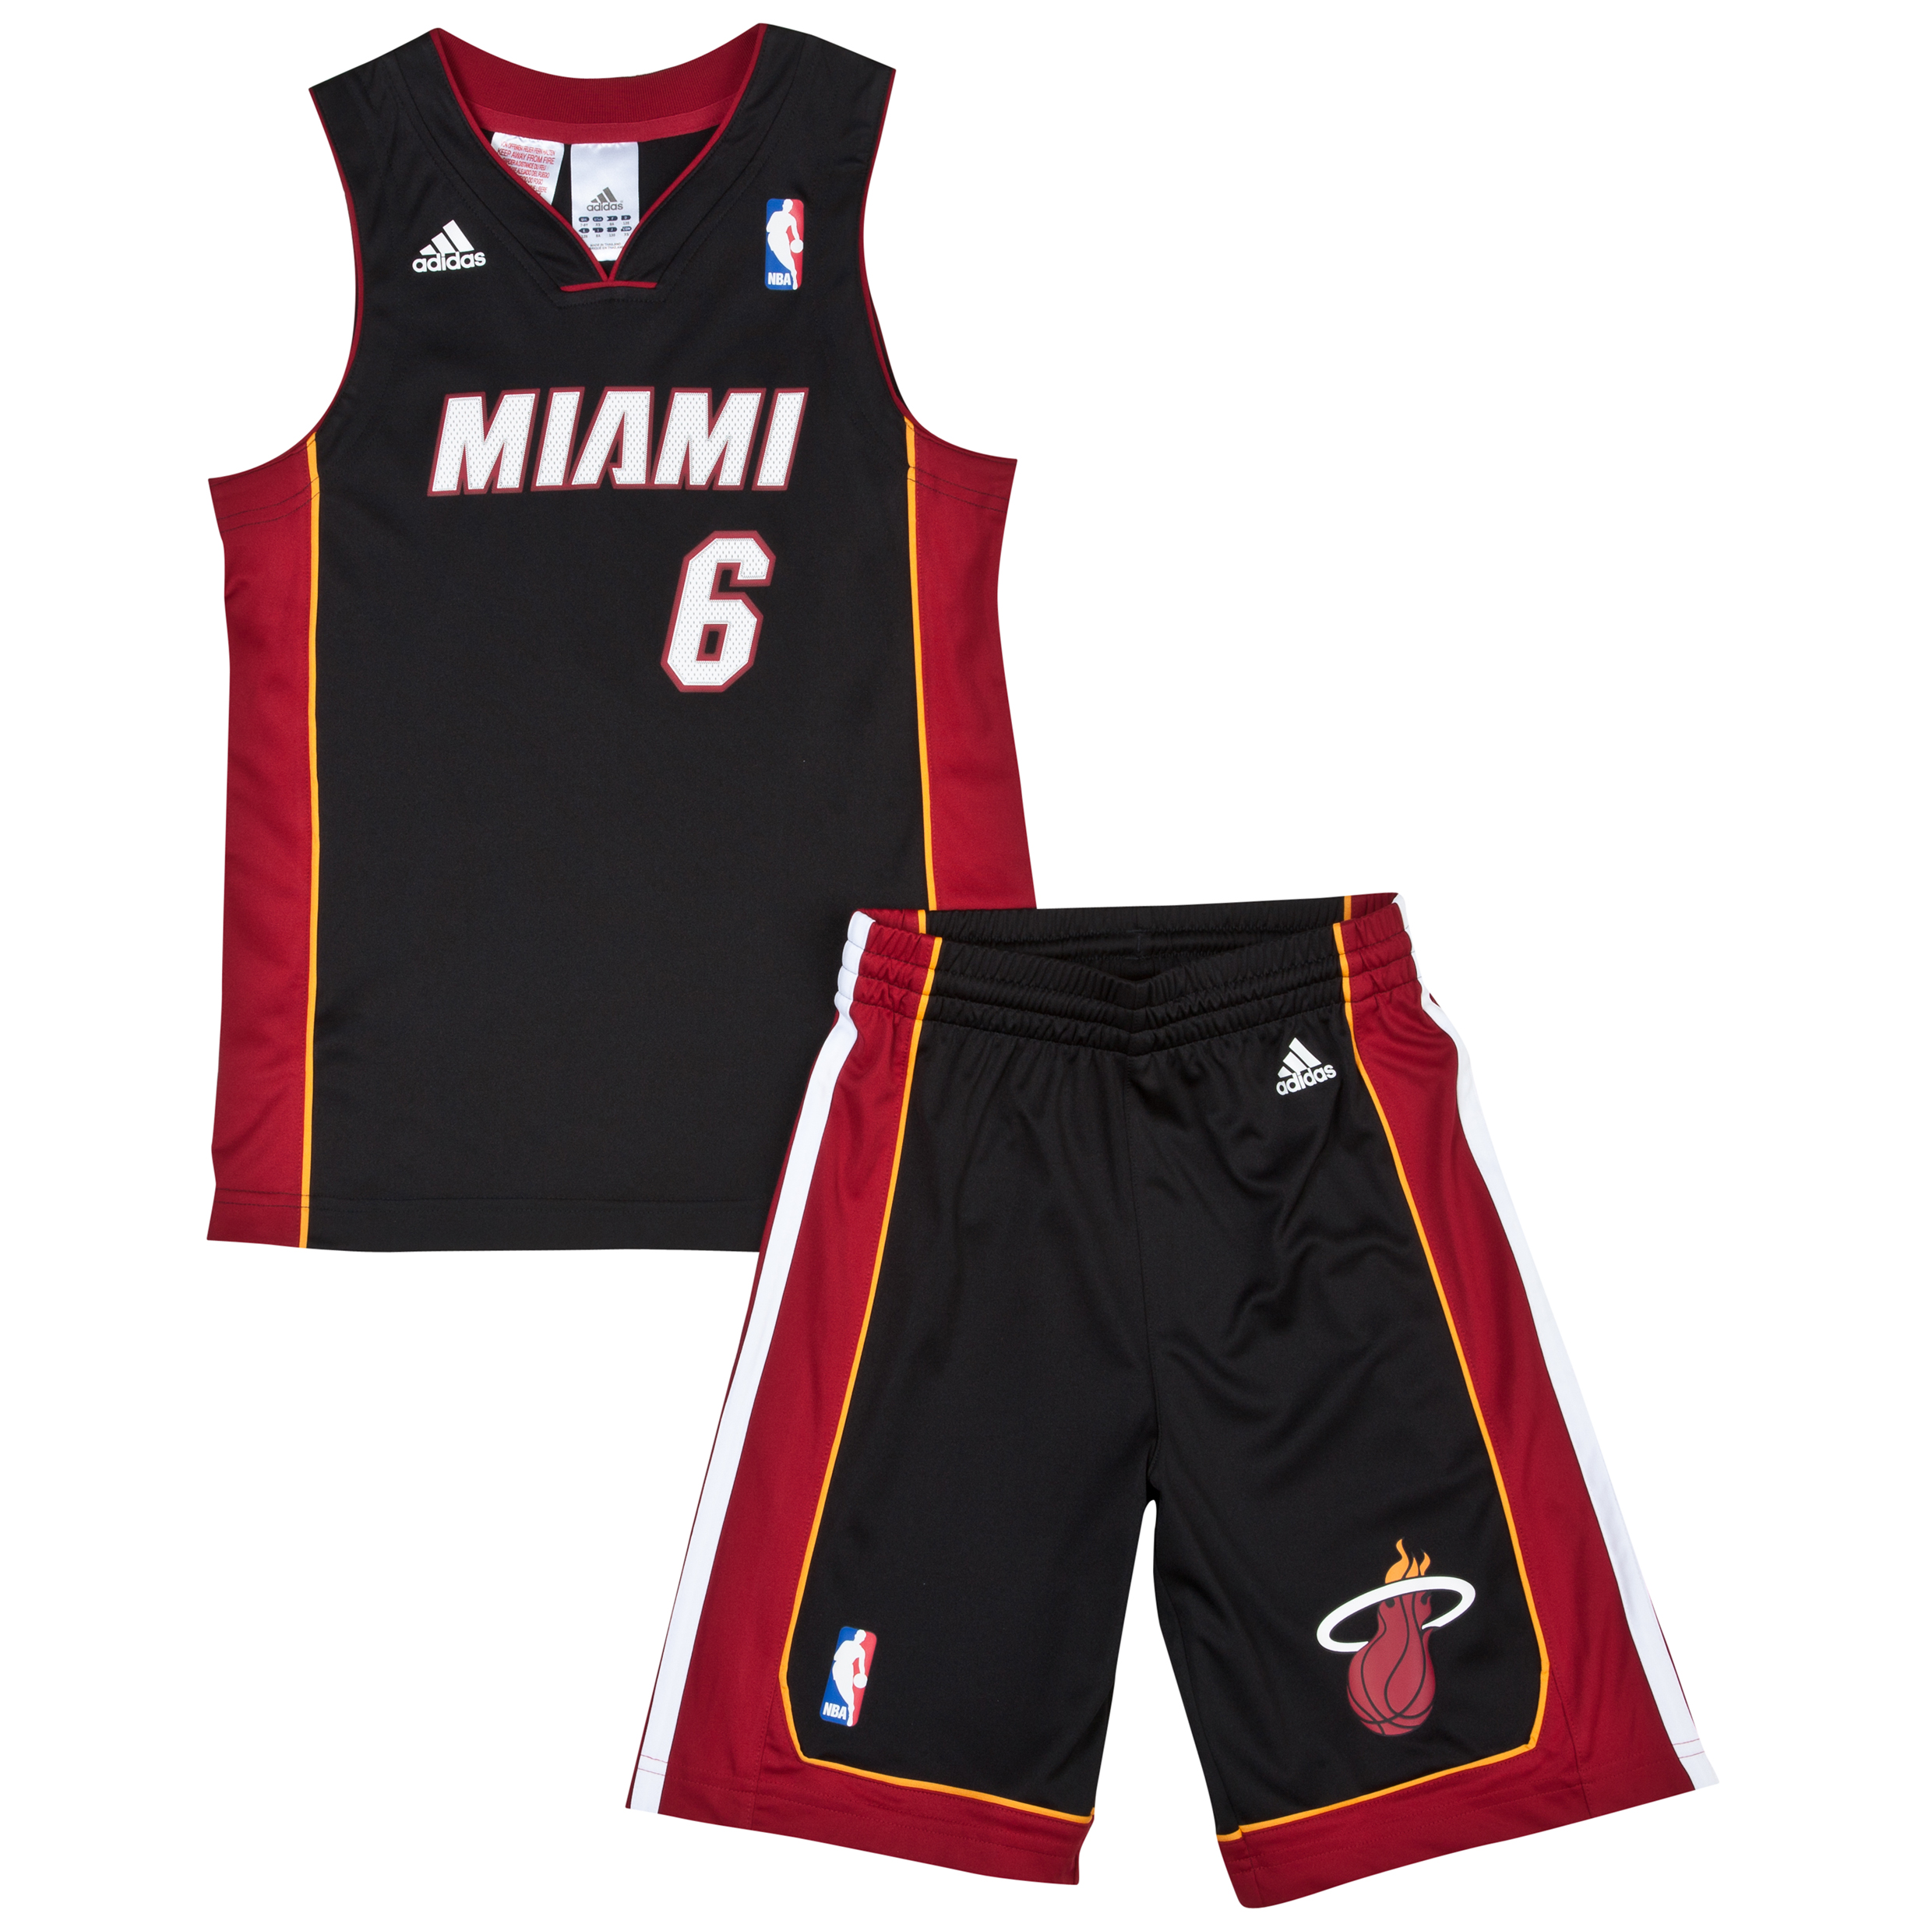 Miami Heat Road Replica Jersey & Shorts - Lebron James - Junior